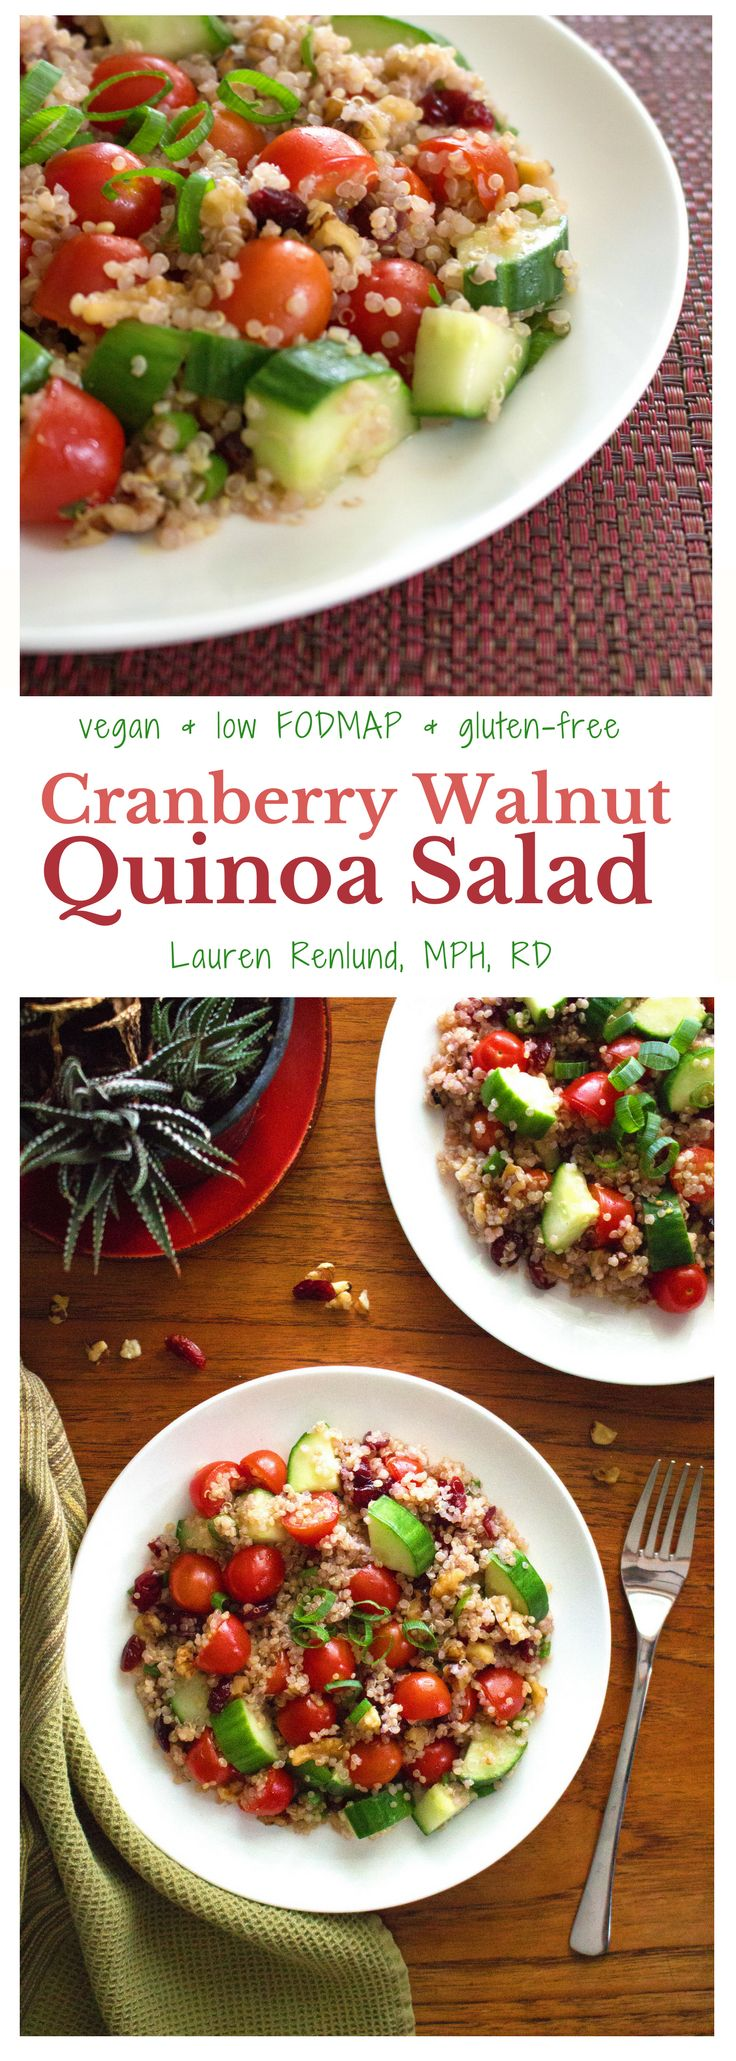 Low FODMAP Cranberry Walnut Quinoa Salad! Super flavourful and delicious. Healthy, Vegan & Gluten-Free